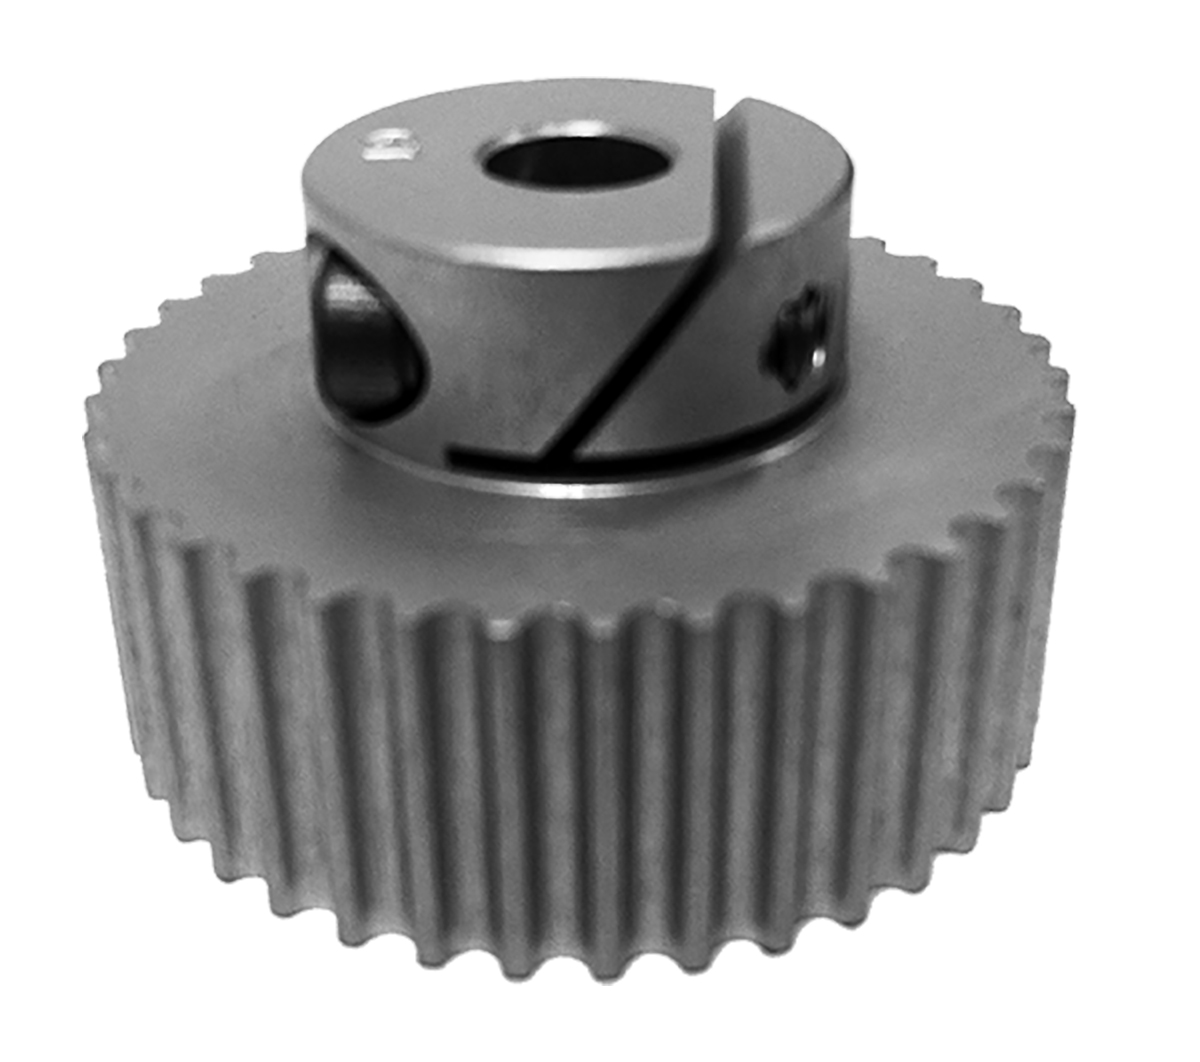 25-3P09-IA3 - E-Z Lock Hub Aluminum Powerhouse® Pulleys